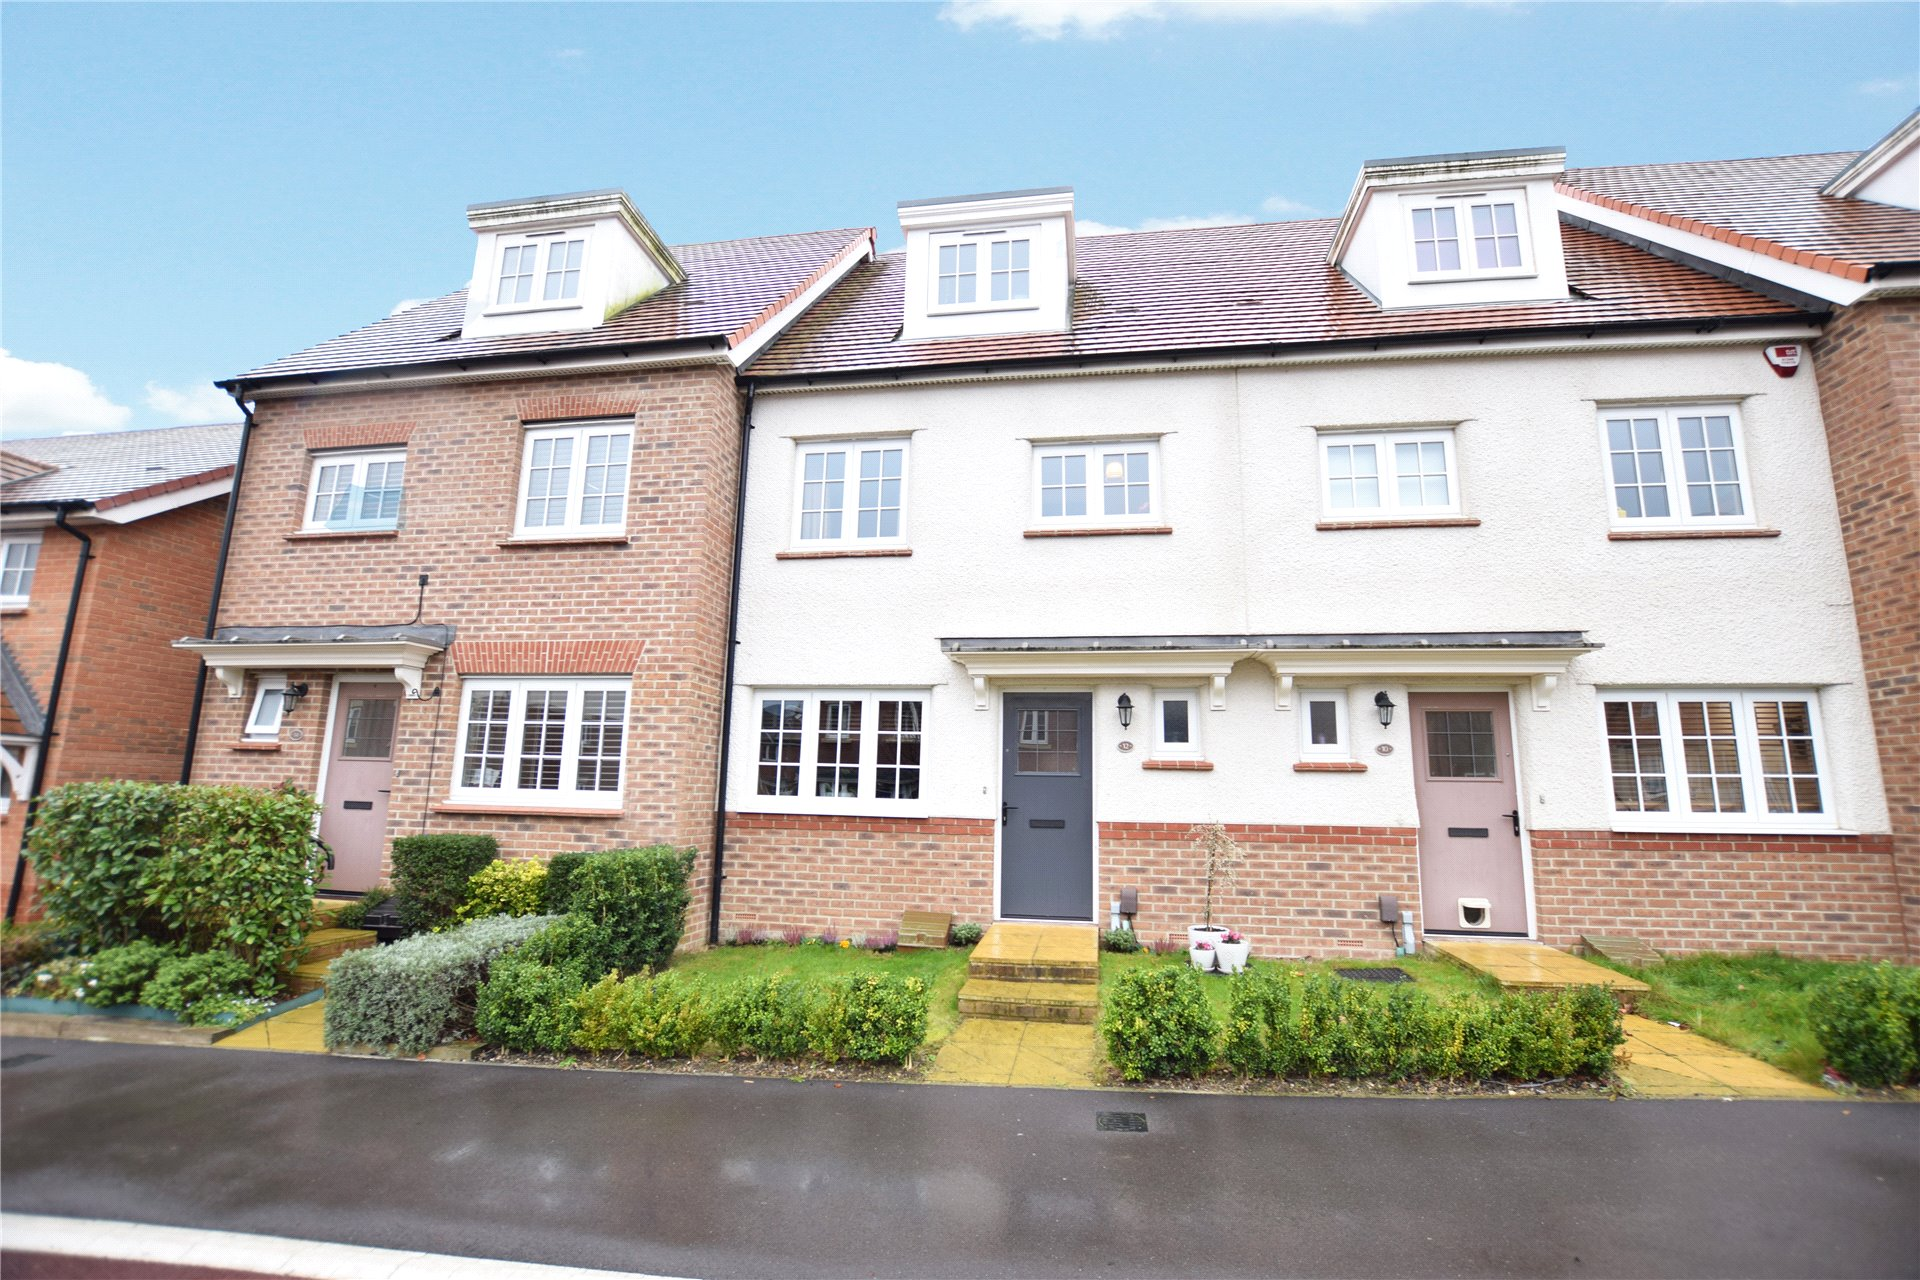 4 Bedrooms Terraced House for sale in Eagle Way, Bracknell, Berkshire, RG12